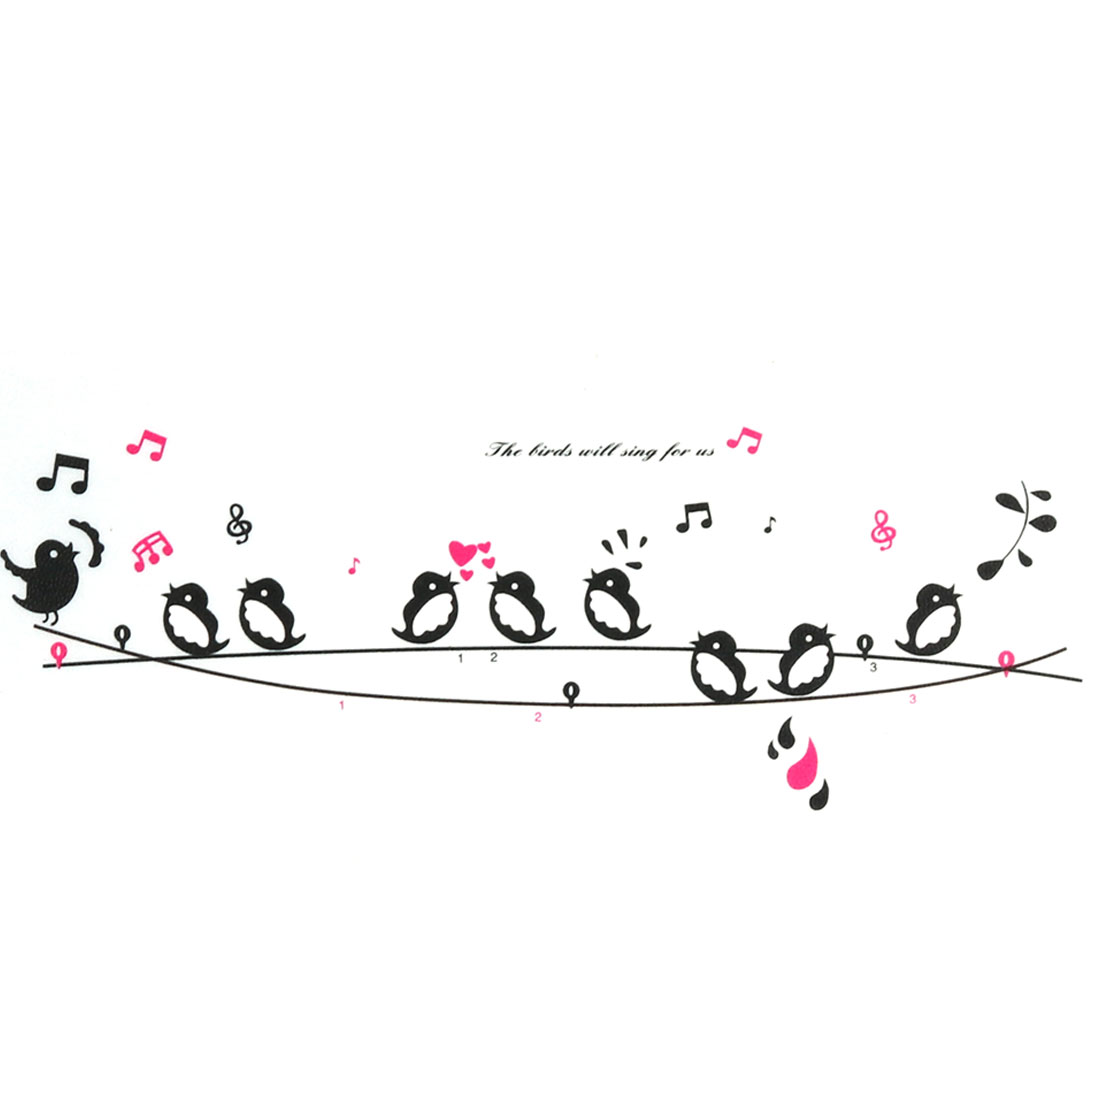 Bedroom 9 Birds Singing On The Wire Print Decal Mural Art Decor Wall Sticker